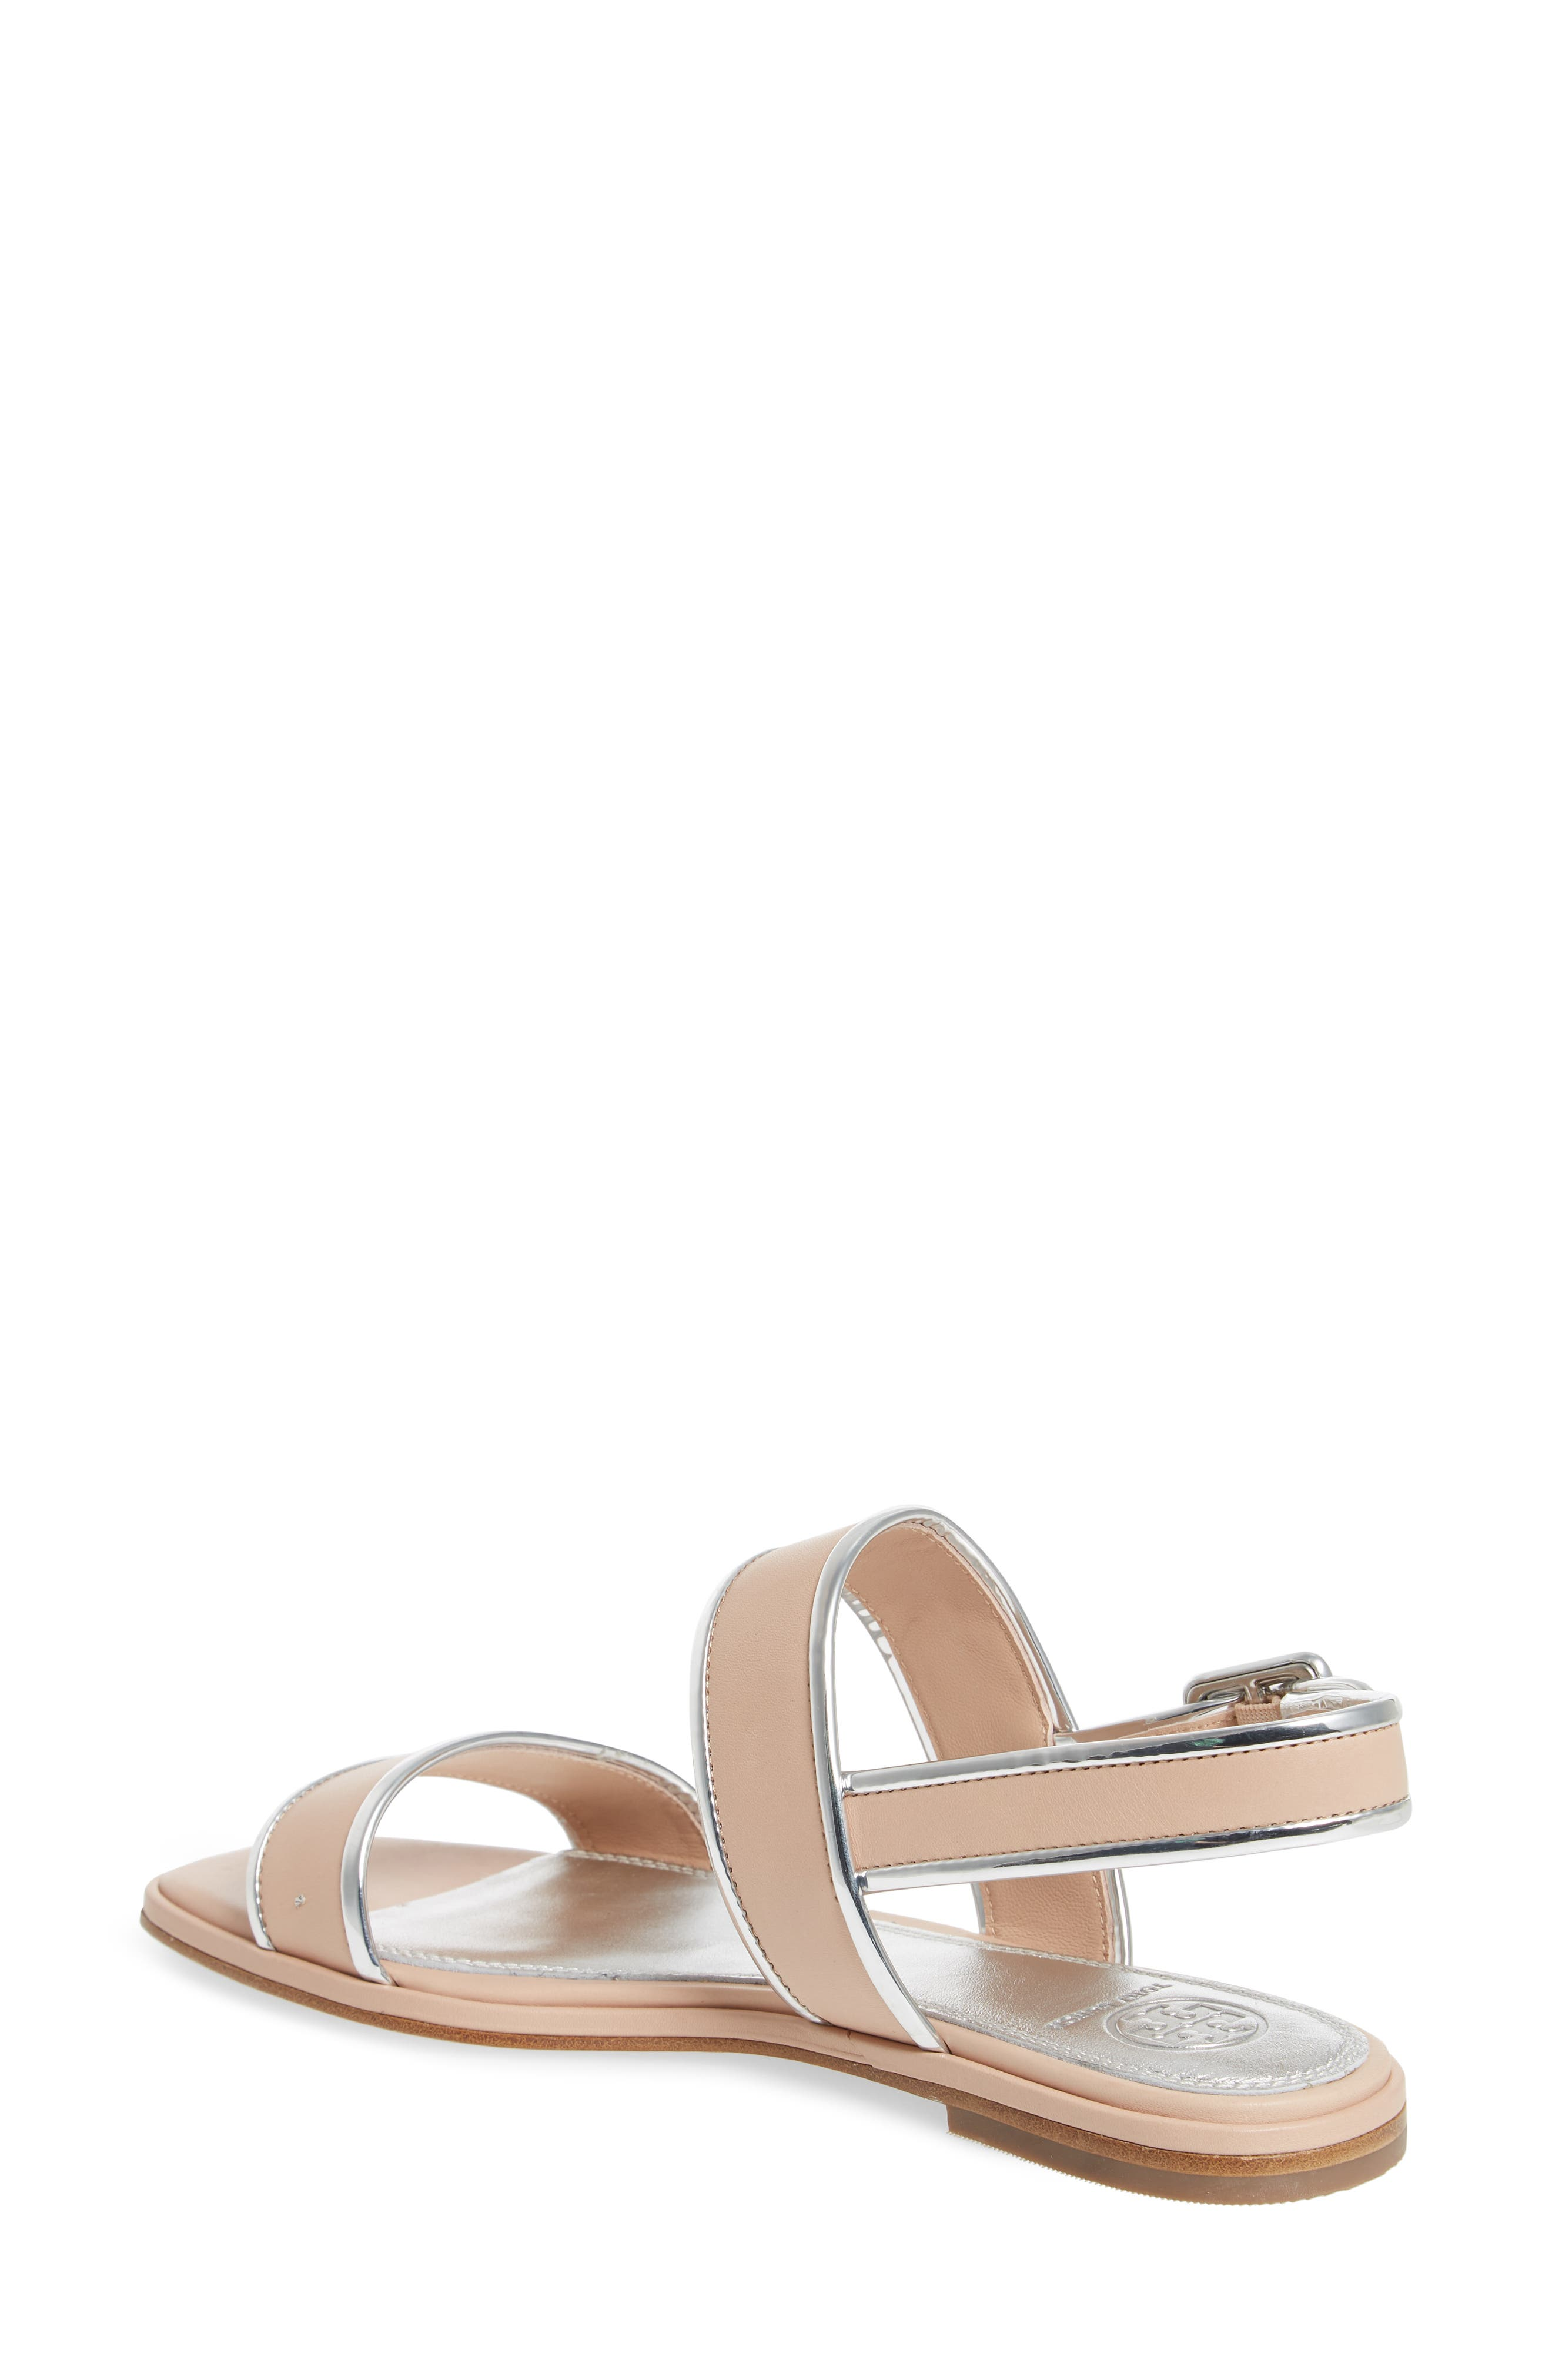 Delaney Double Strap Sandal,                             Alternate thumbnail 8, color,